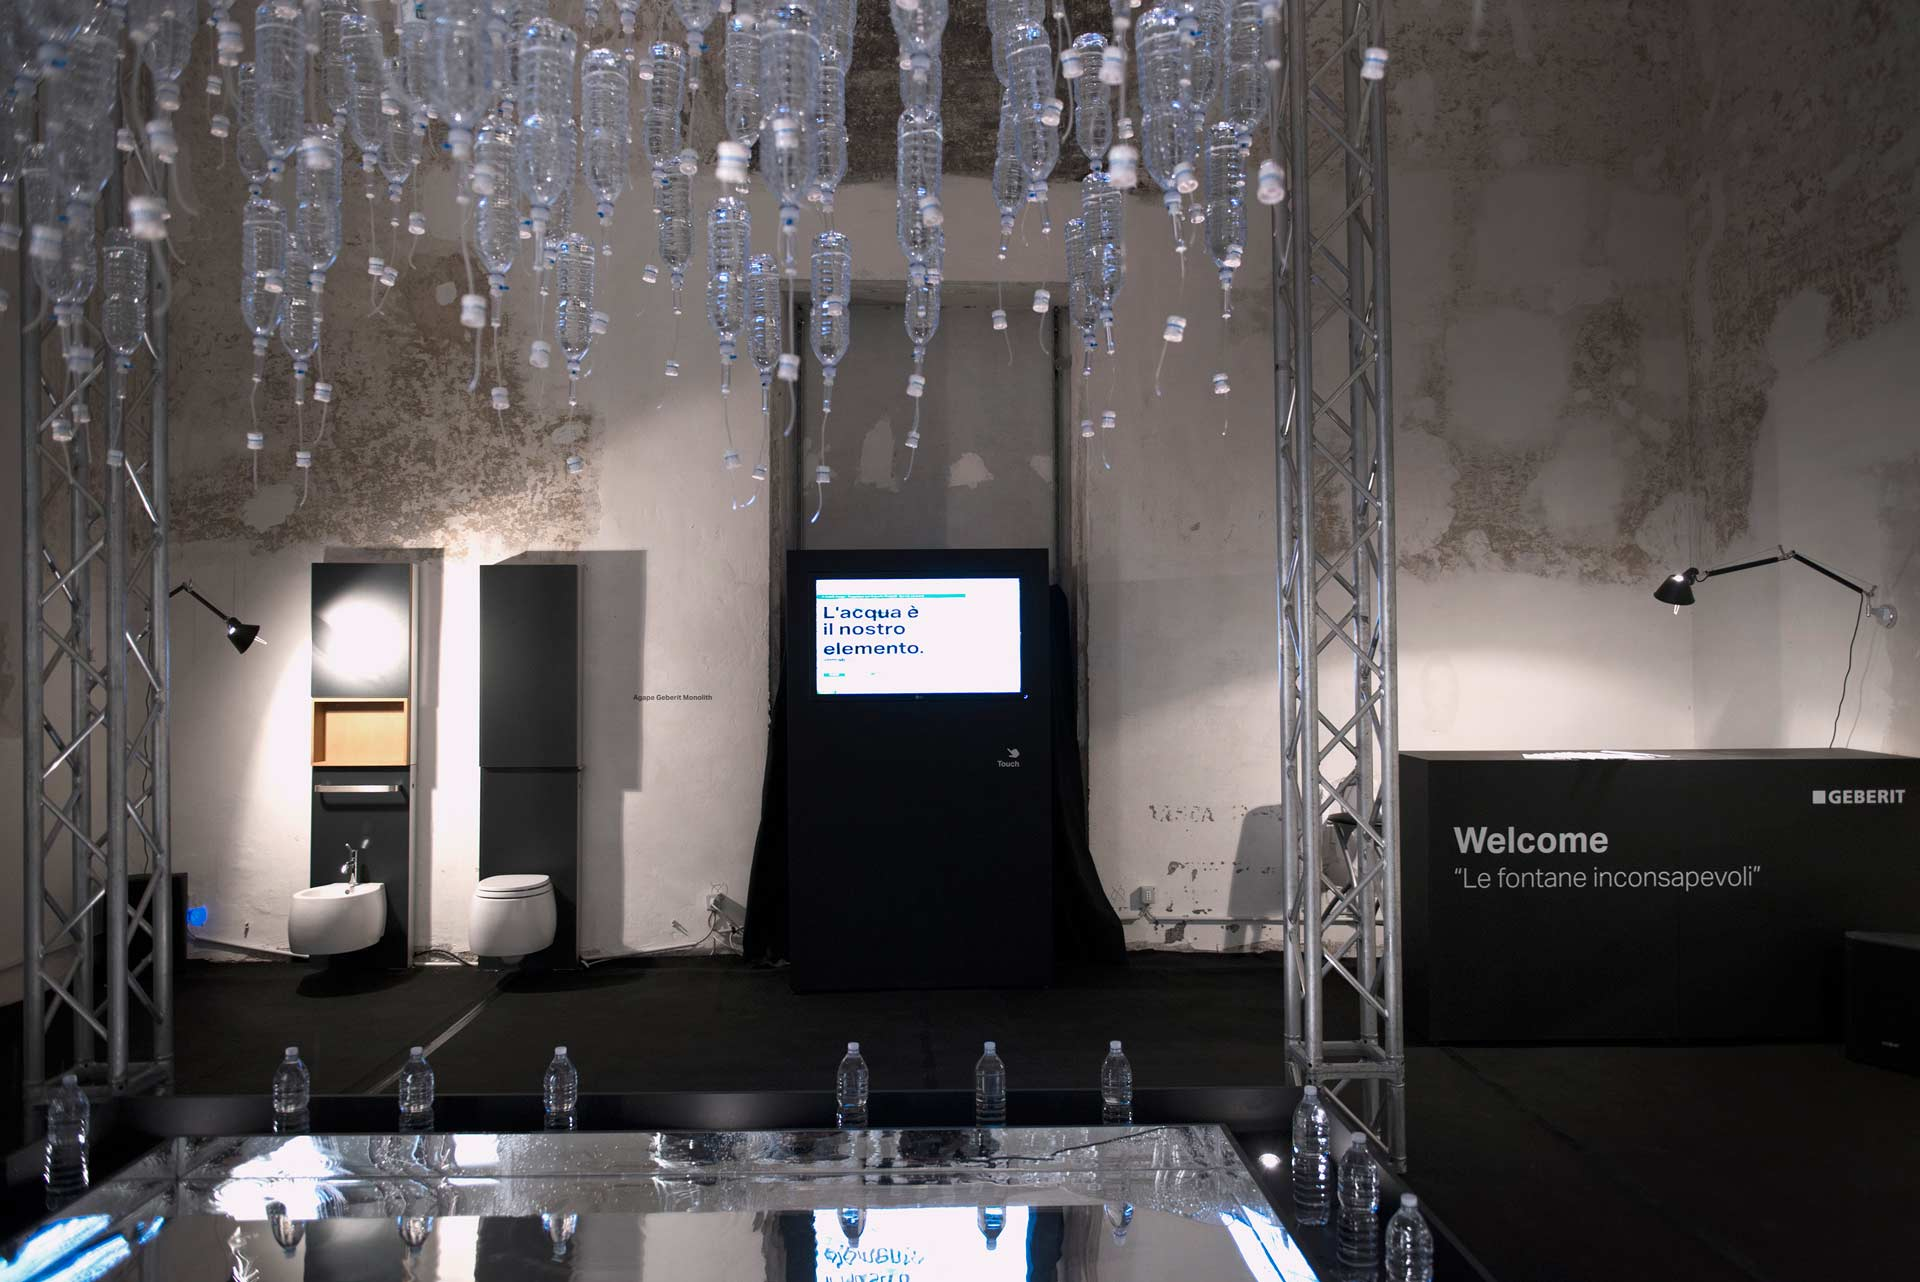 Geberit Bologna Water Design 2013 installation 05